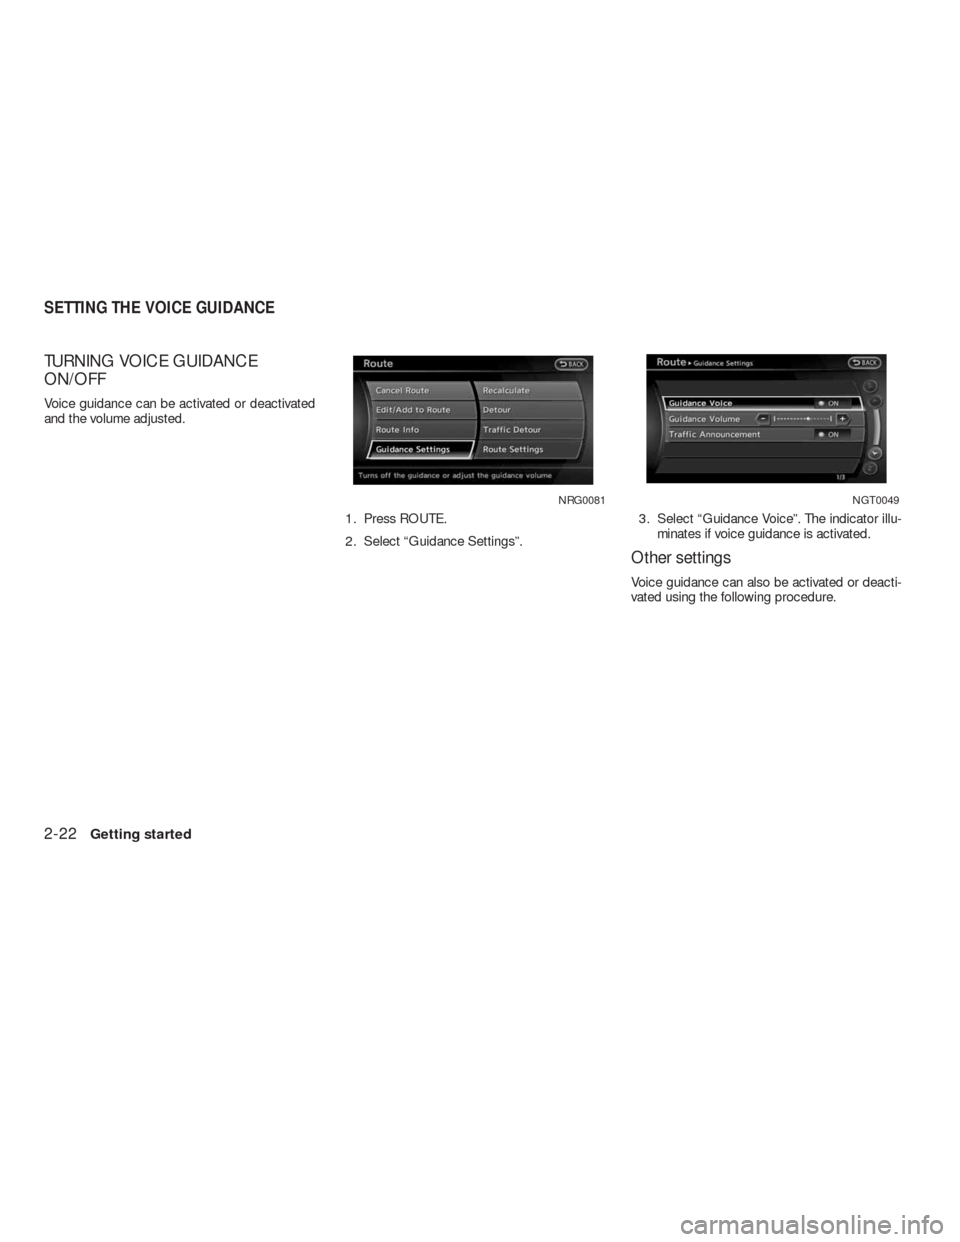 NISSAN ALTIMA COUPE 2010 D32 / 4.G Navigation Manual, Page 29